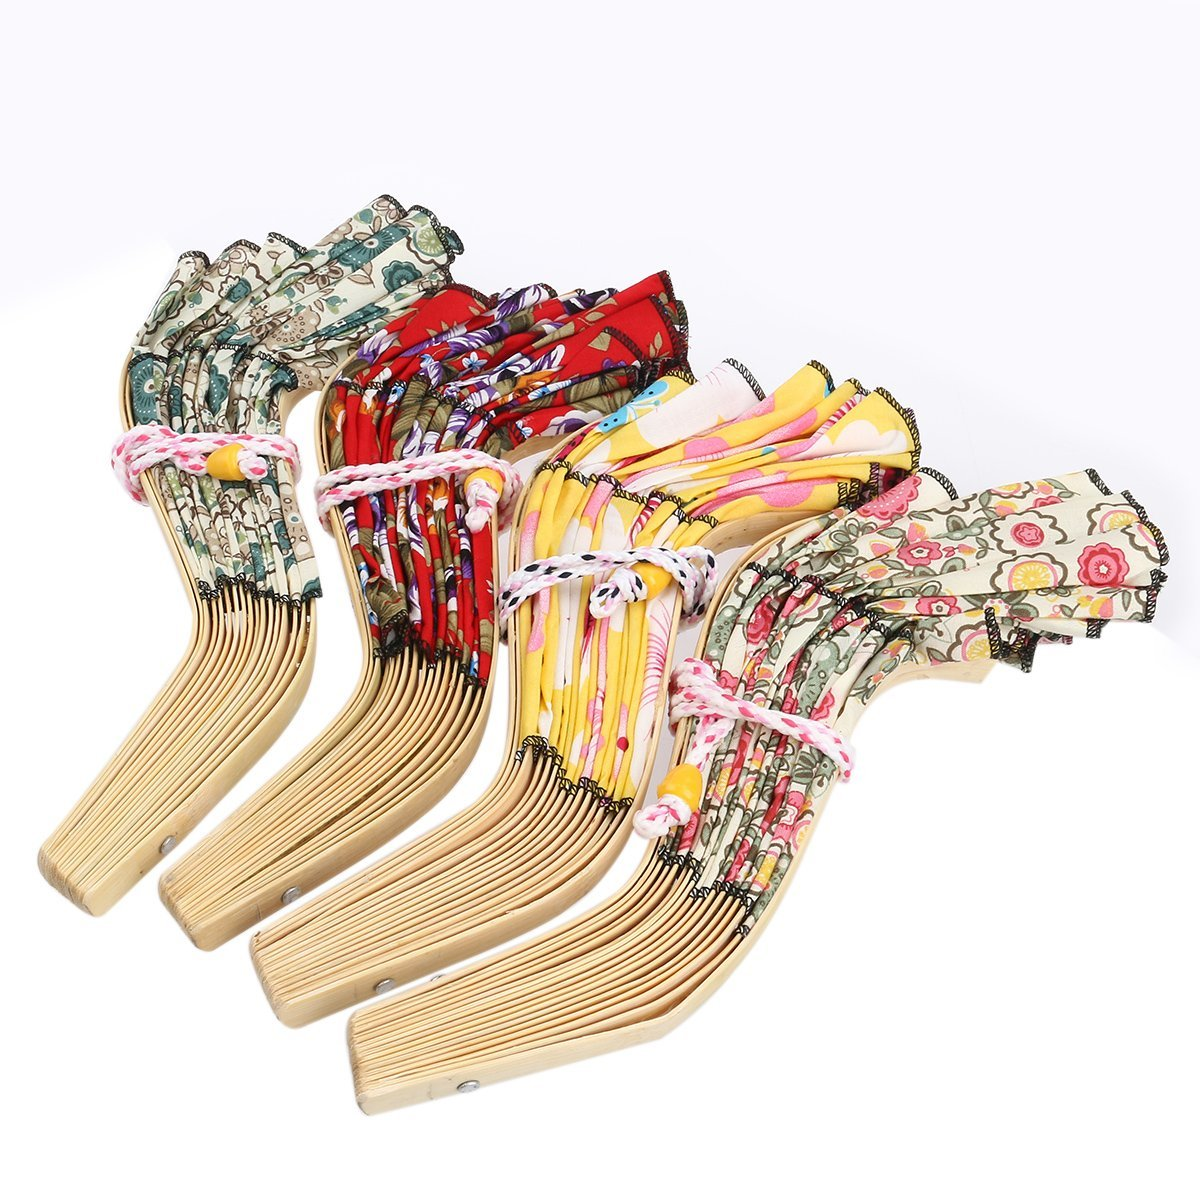 Gift for Women TINKSKY 2 Hand Fan Sunhat Women 2 in 1 Portable Foldable Bamboo Frame Floral Printed Hand Fan Sunhat Hat Random Color